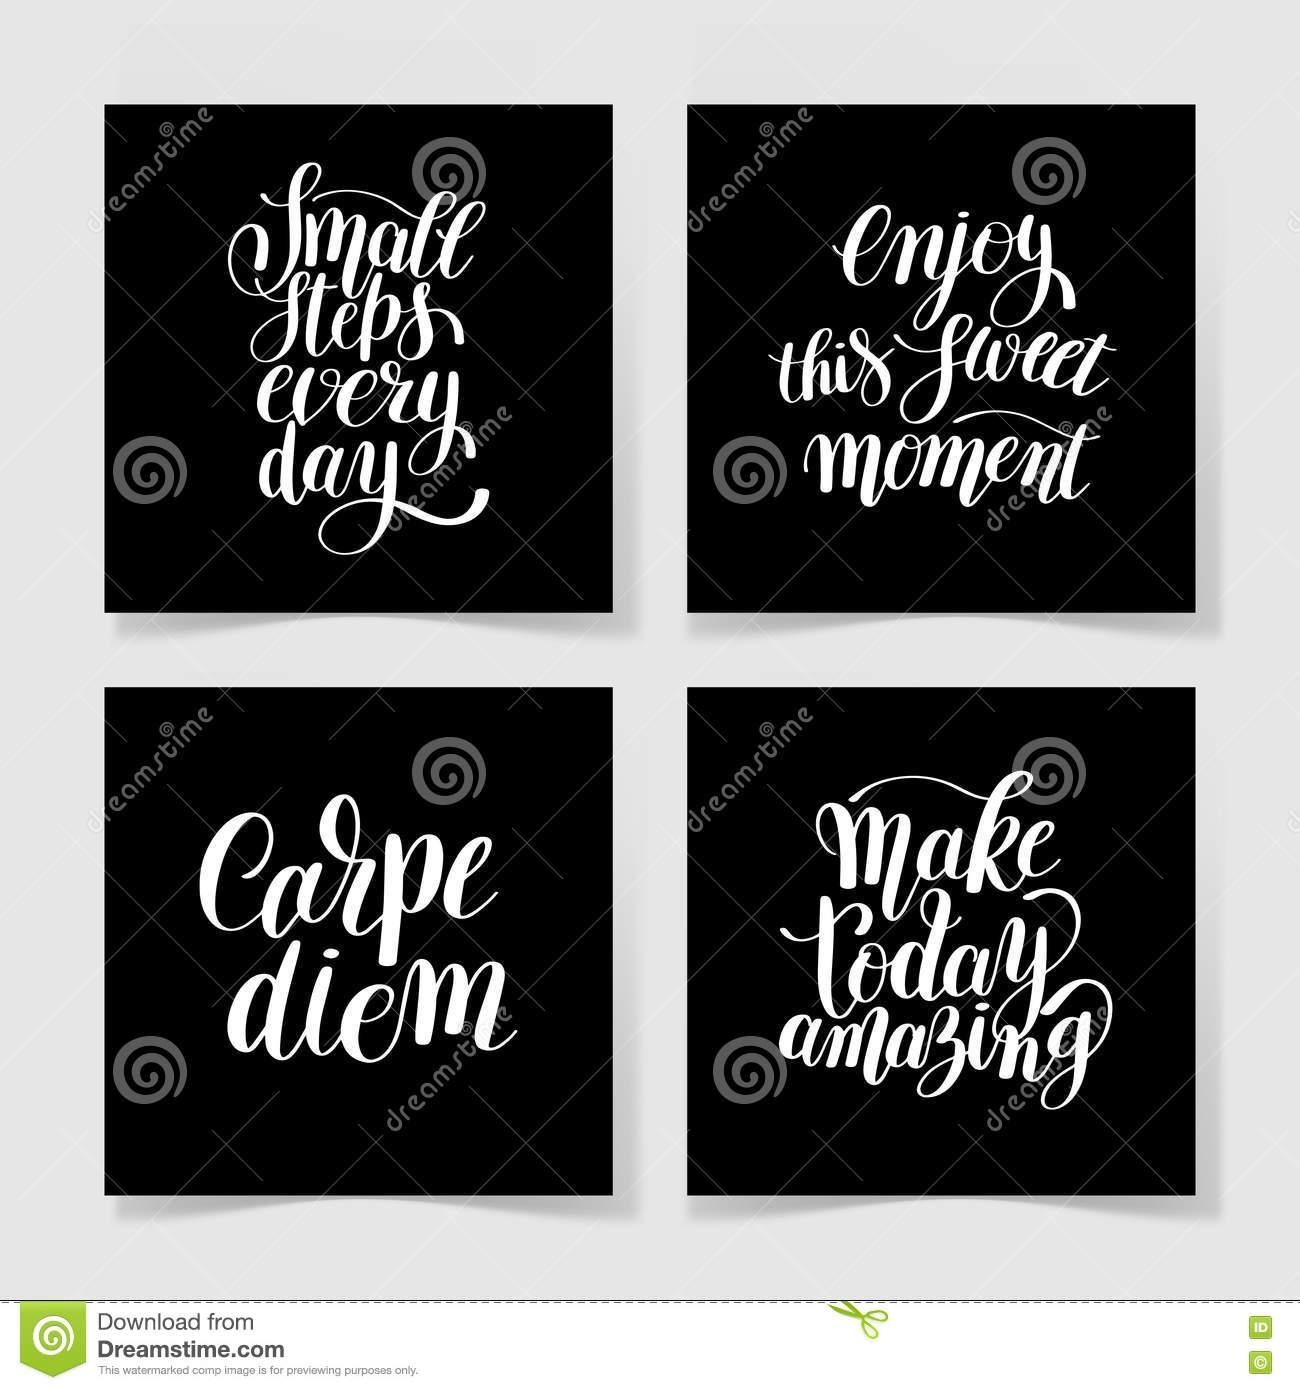 Quotes Set To Printable Wall Art, Textile Design Stock Vector throughout Printable Wall Art Quotes